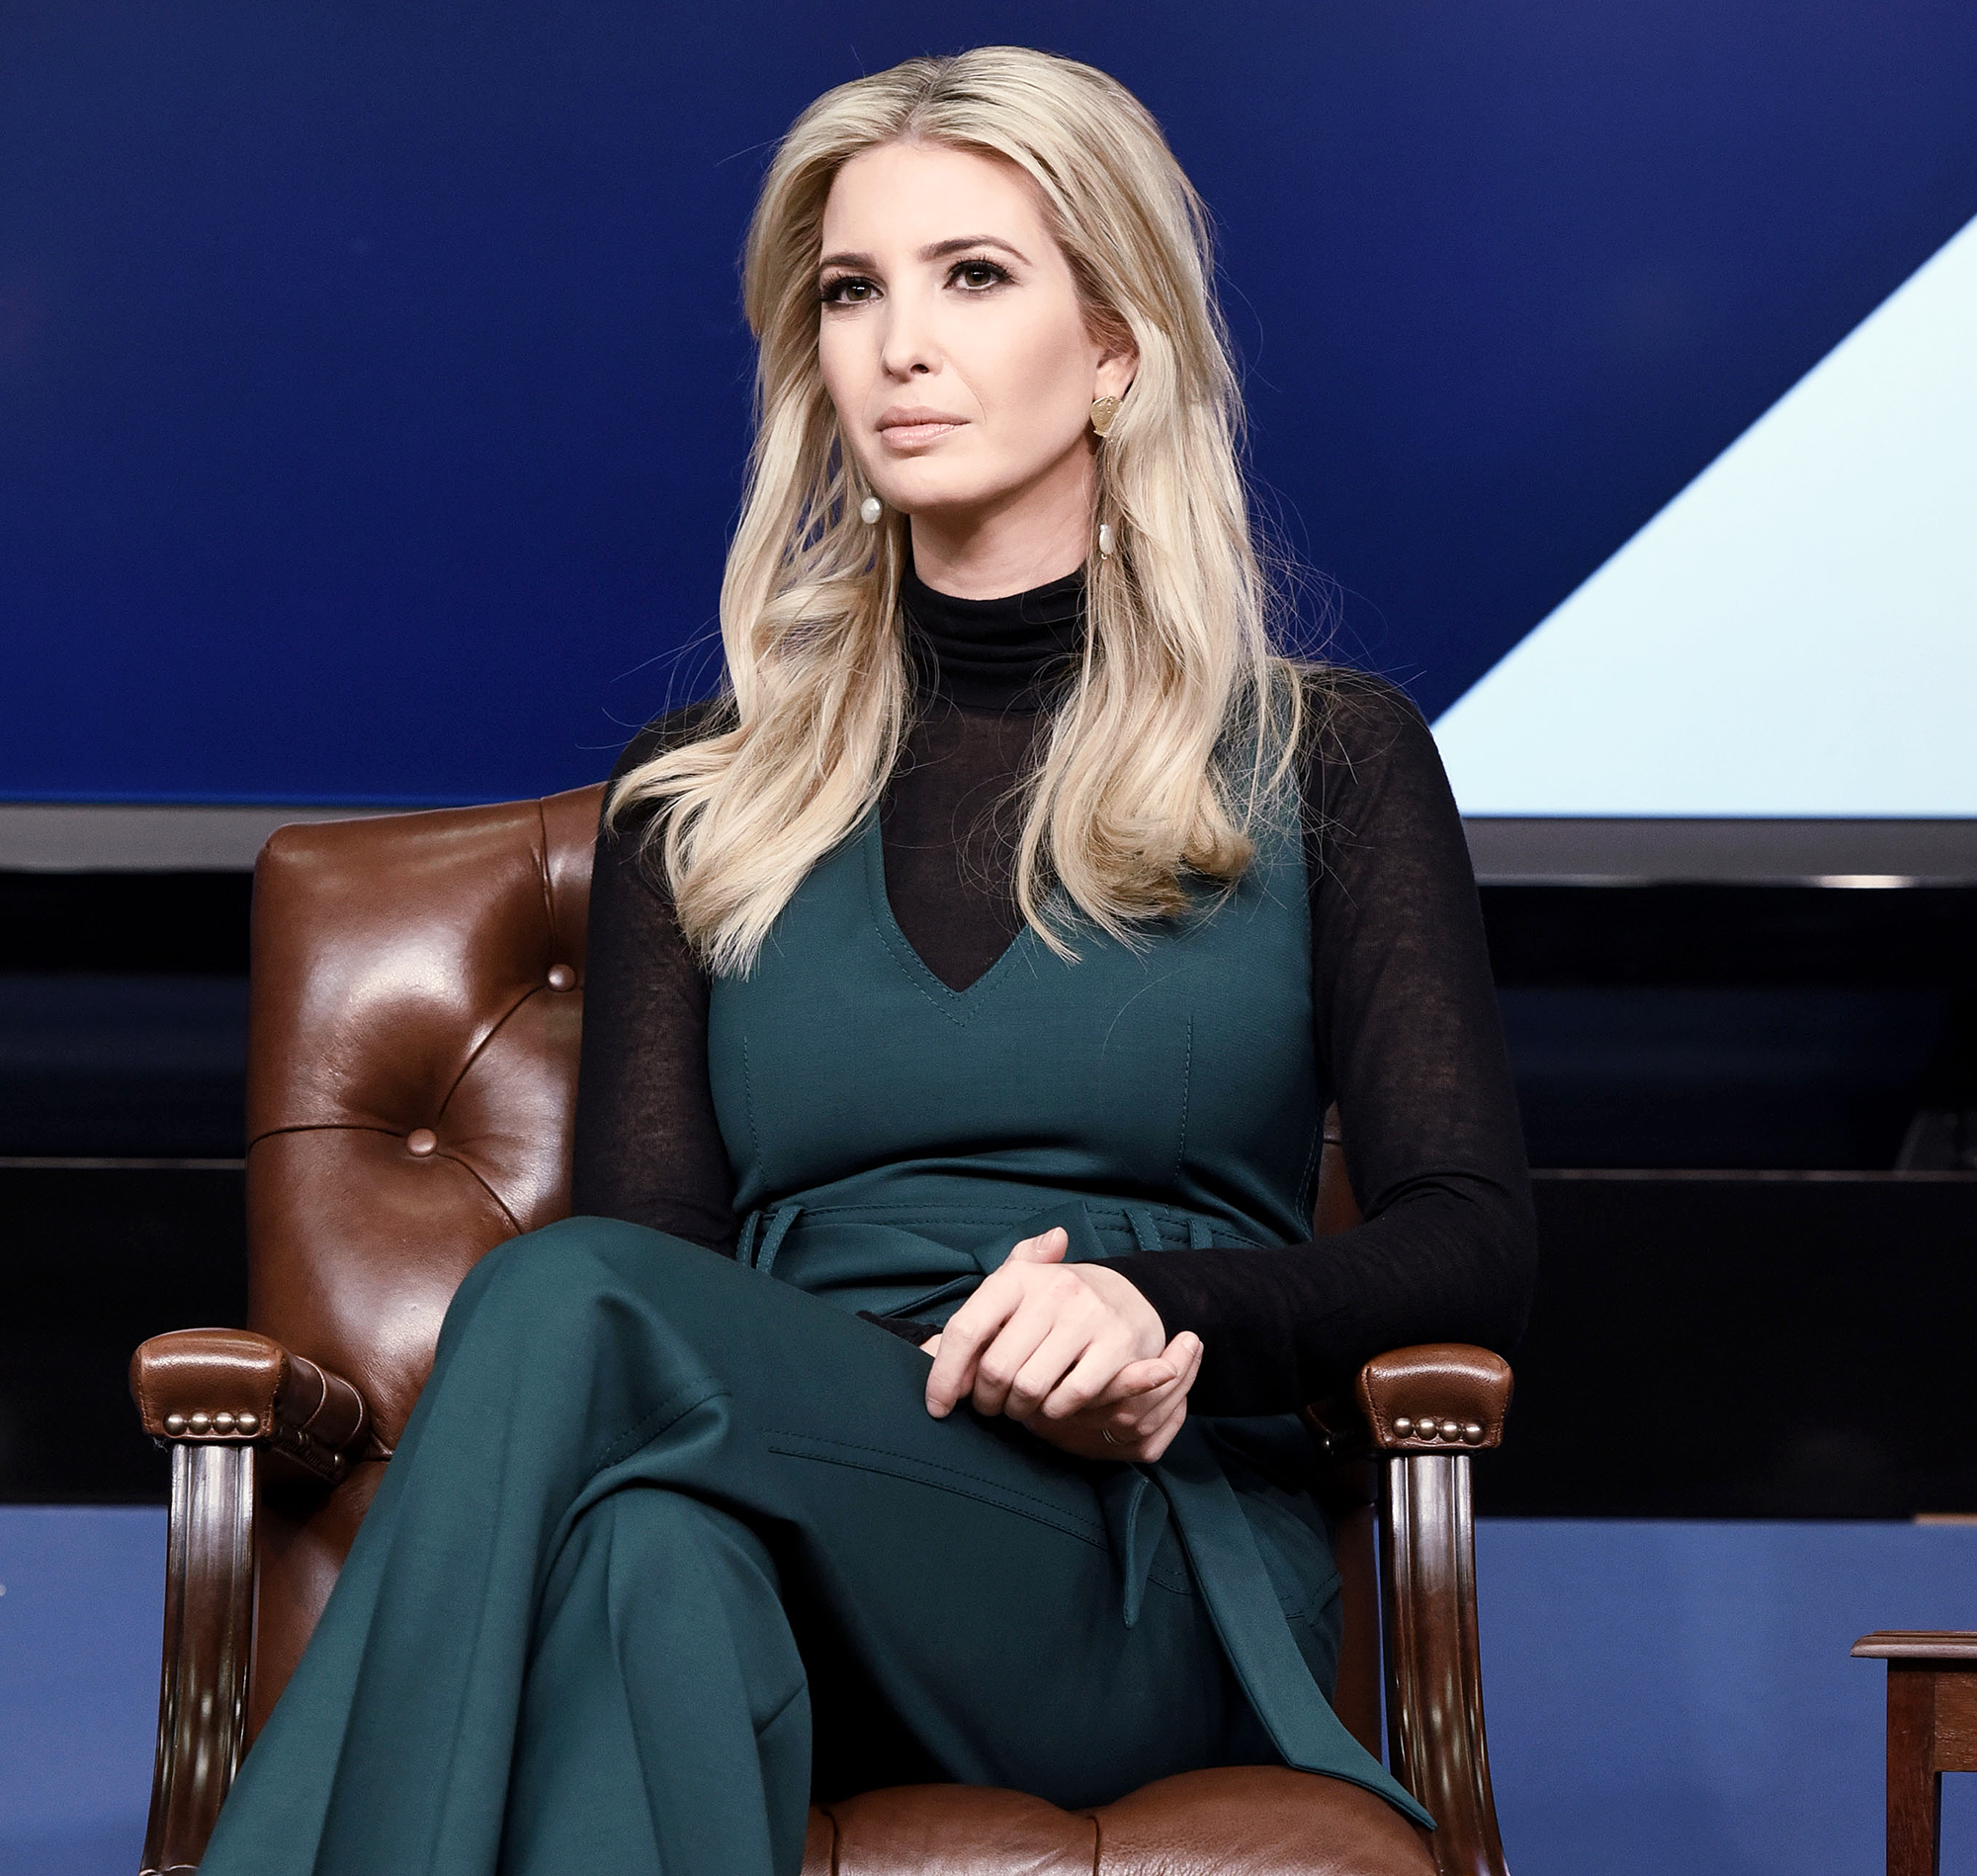 76c703c0522c Yükle (2000x1898)Ivanka Trump Tweets  Ignore the Trolls  After Photo  BacklashIvanka Trump attends Generation Next  A White House Forum in the  South Cour.